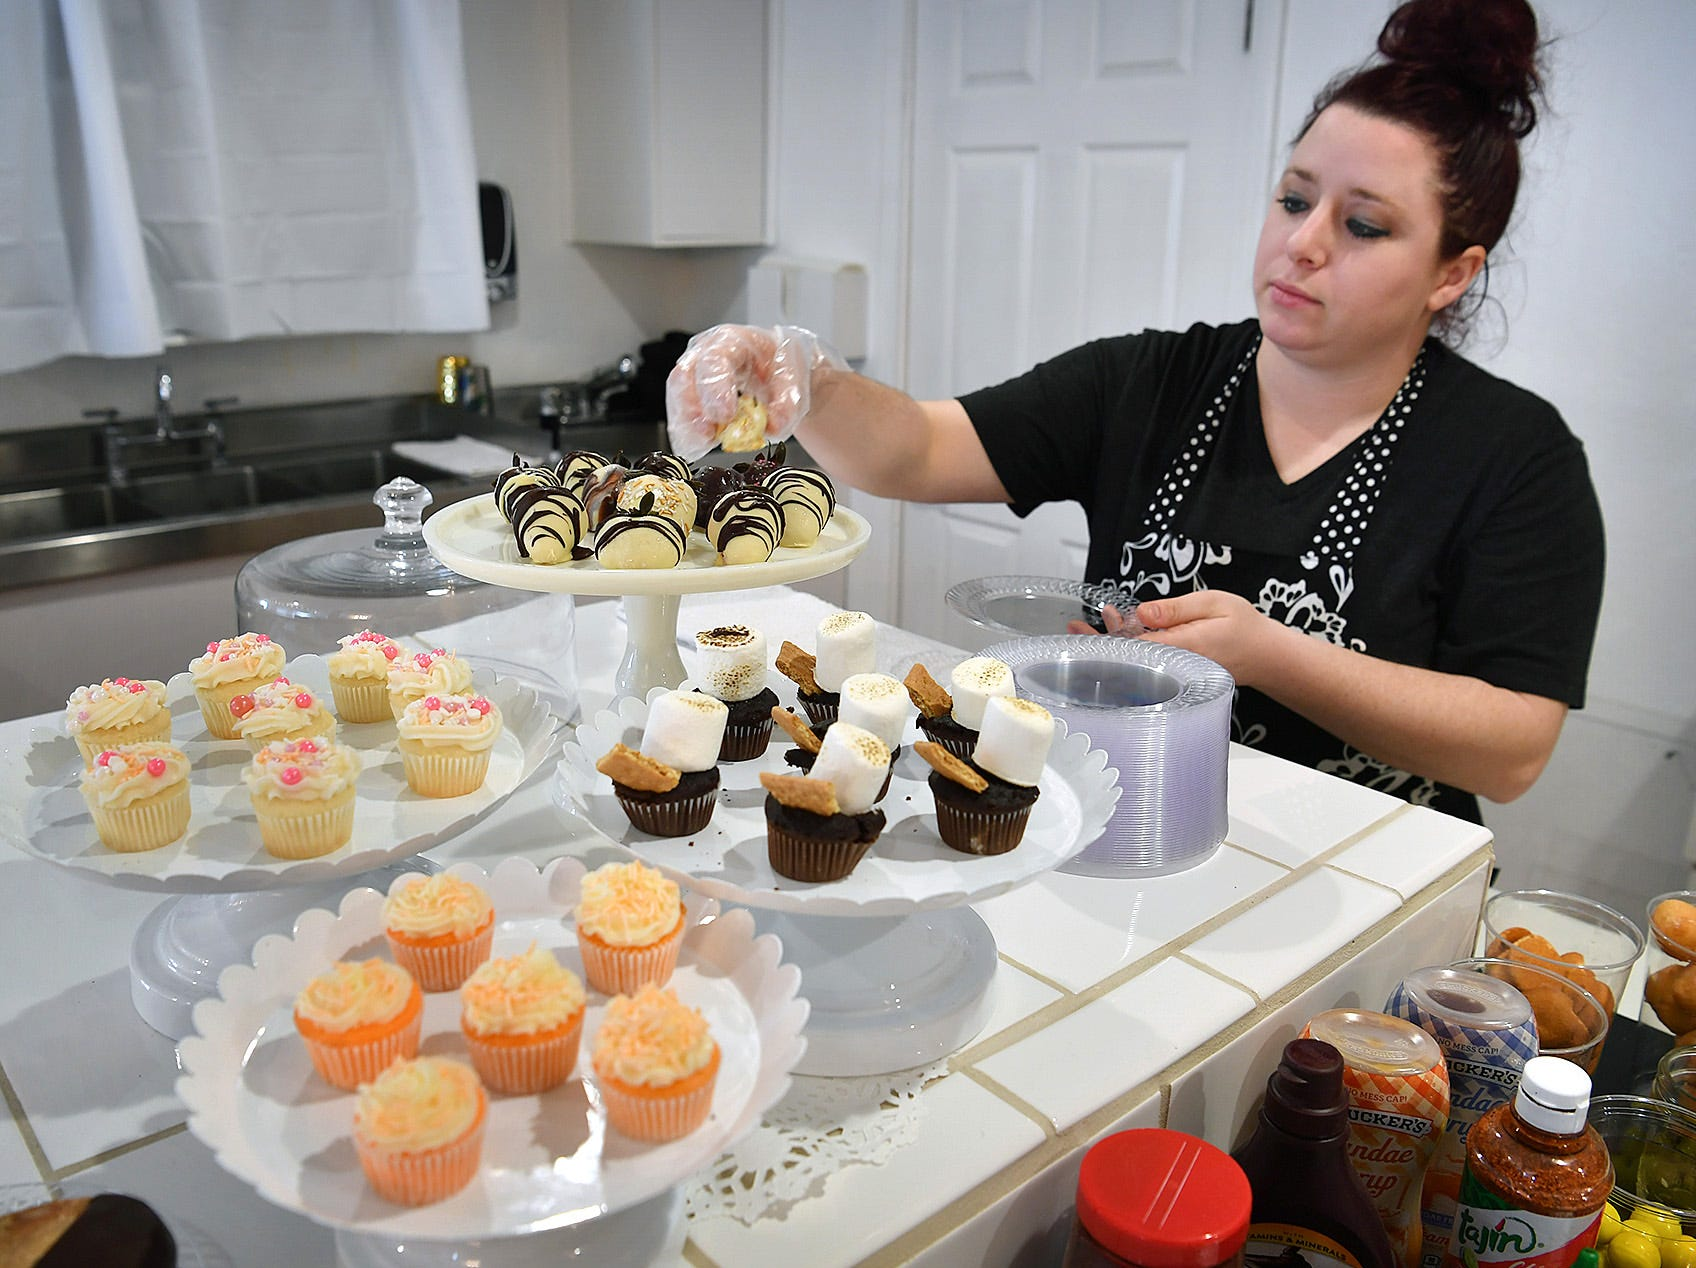 Brenna Pohlod adds to a display of alchohol-infused strawberries and cupcakes at her new business, Clink!, an adult dessert bar. They also offer ice creams, sherbets, sorbets, candy and fresh fruit made with alcohol.